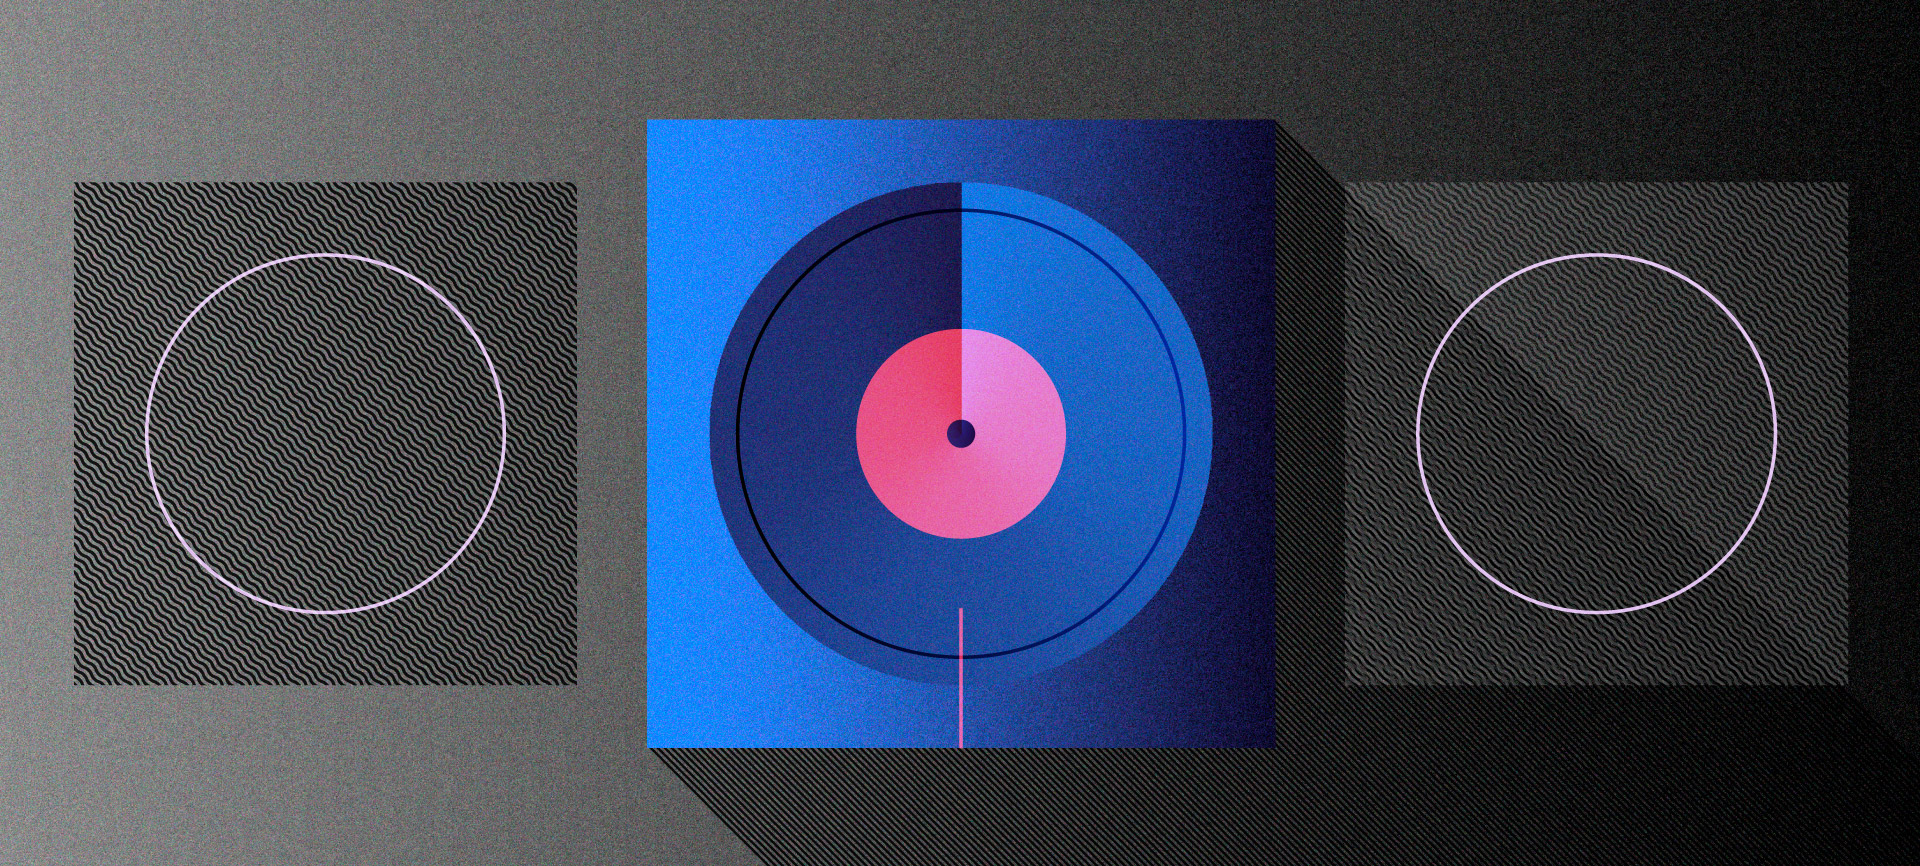 7th image of Google Music project